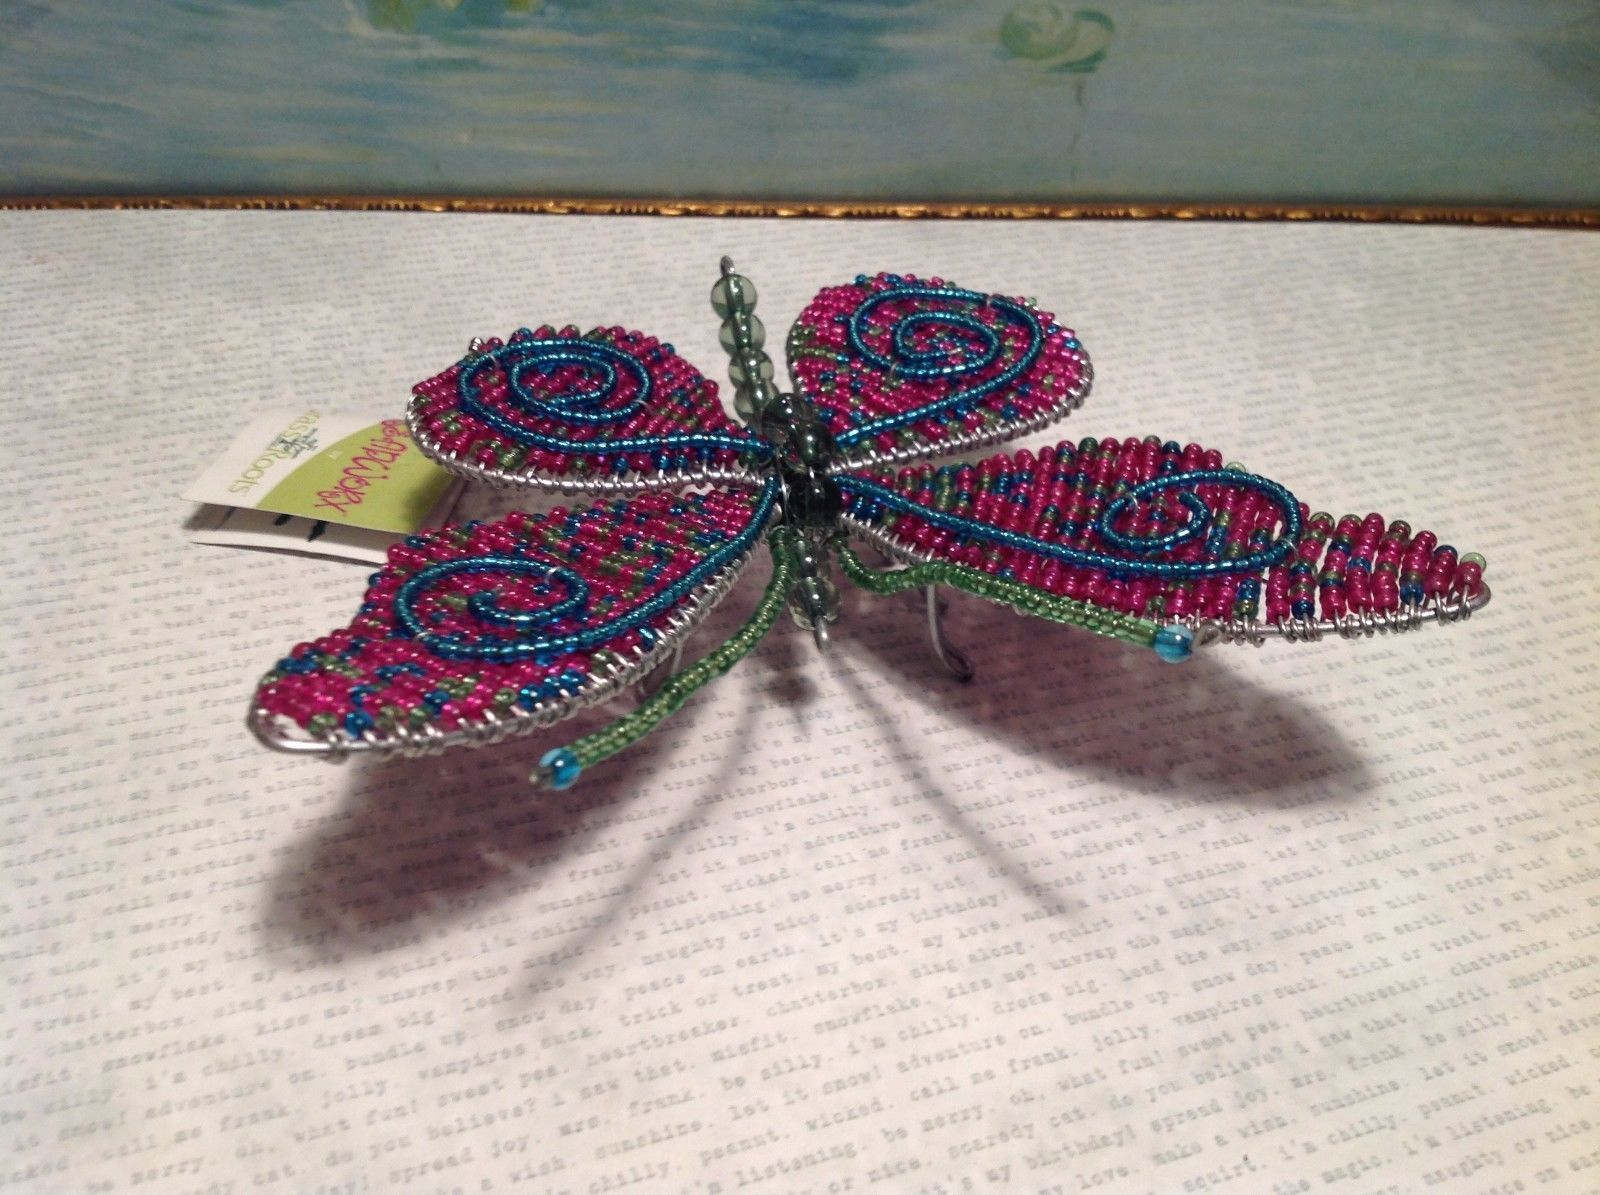 Pink and Blue Beadwork Butterfly Sculpture